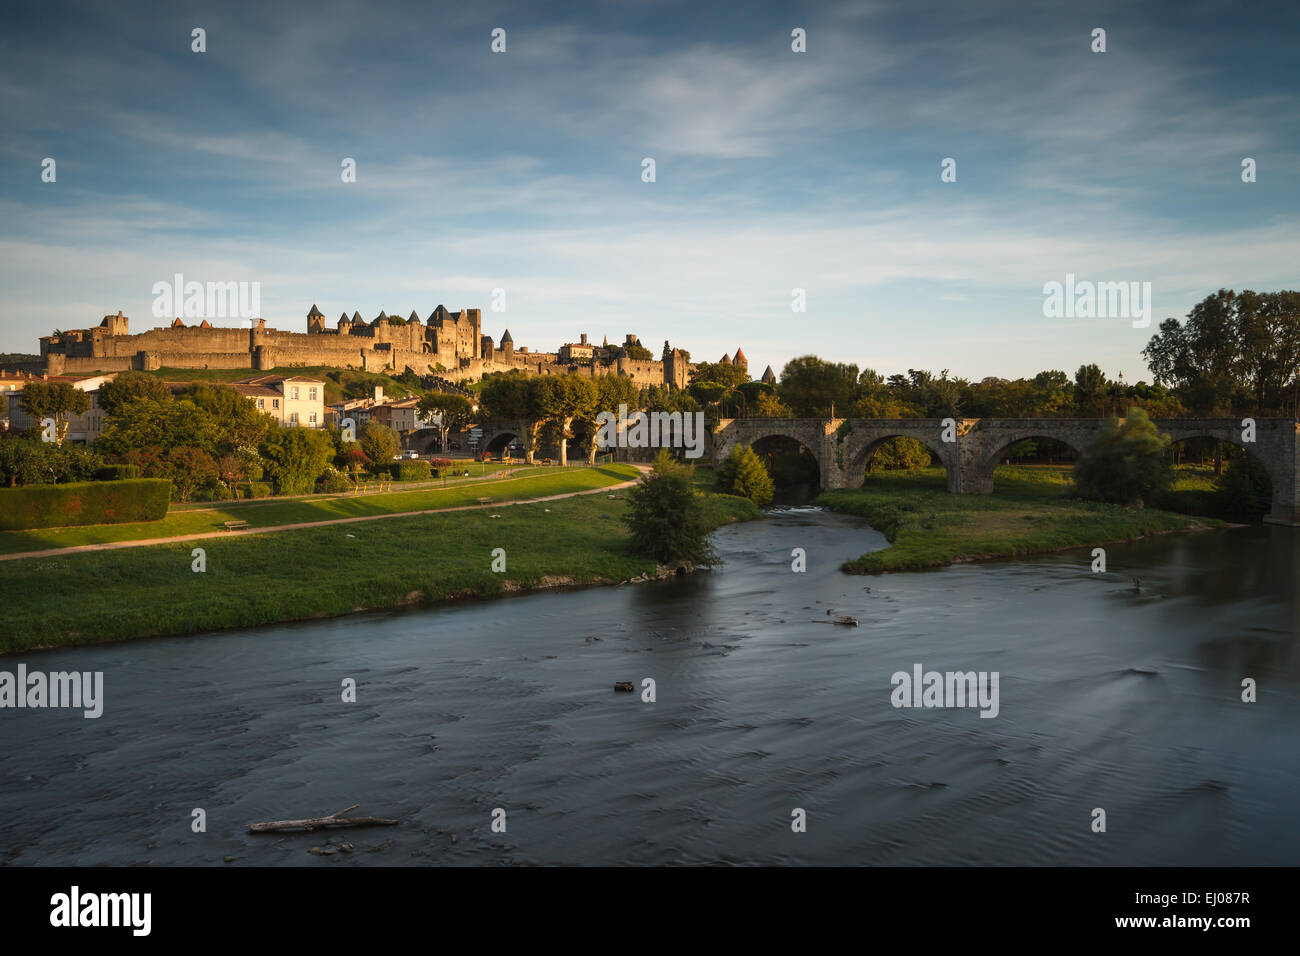 The fortified Cite de Carcassonne by the Aude River, Aude department, Languedoc-Roussillon region, France, Europe. - Stock Image